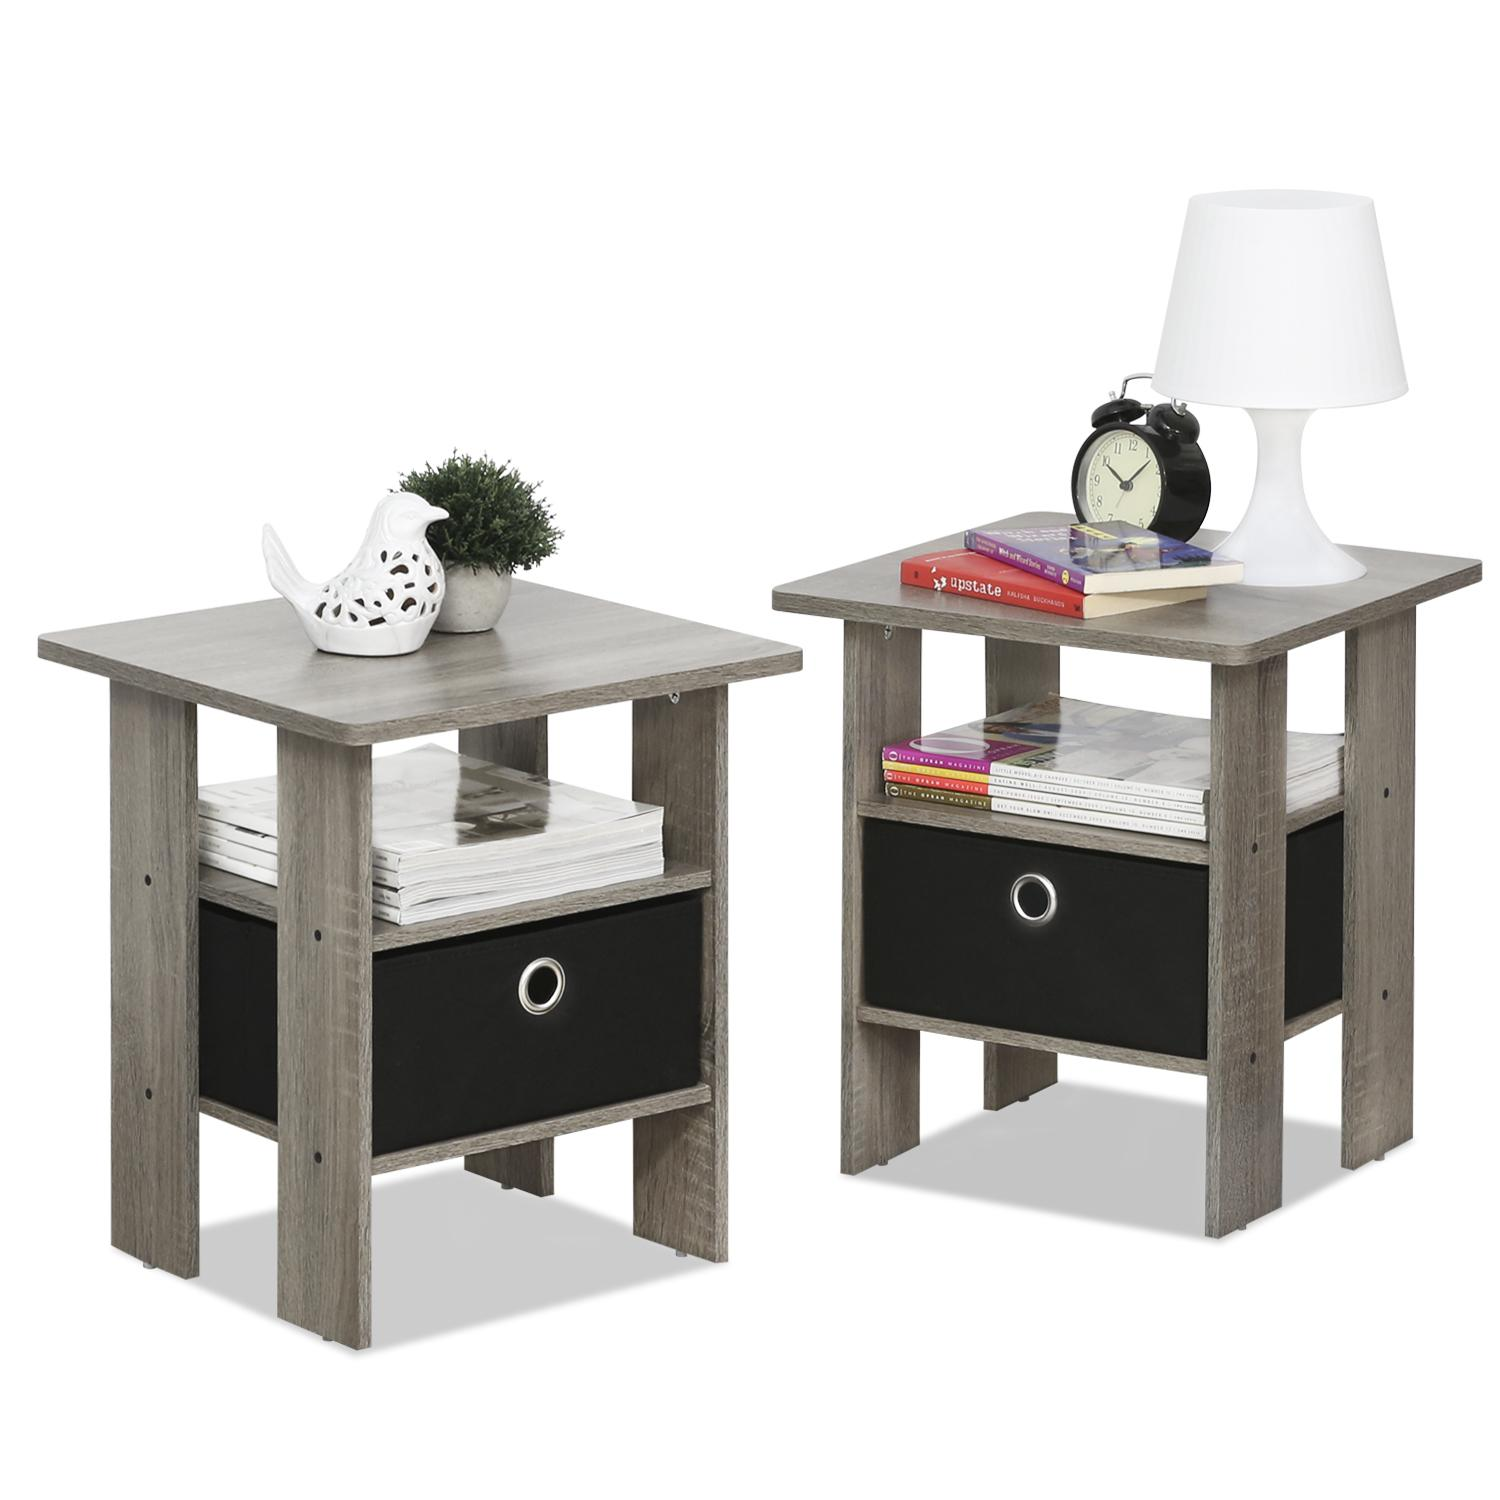 Furinno 2 11157gyw Petite End Table Bedroom Night Stand Set Of 2 Walmart Canada